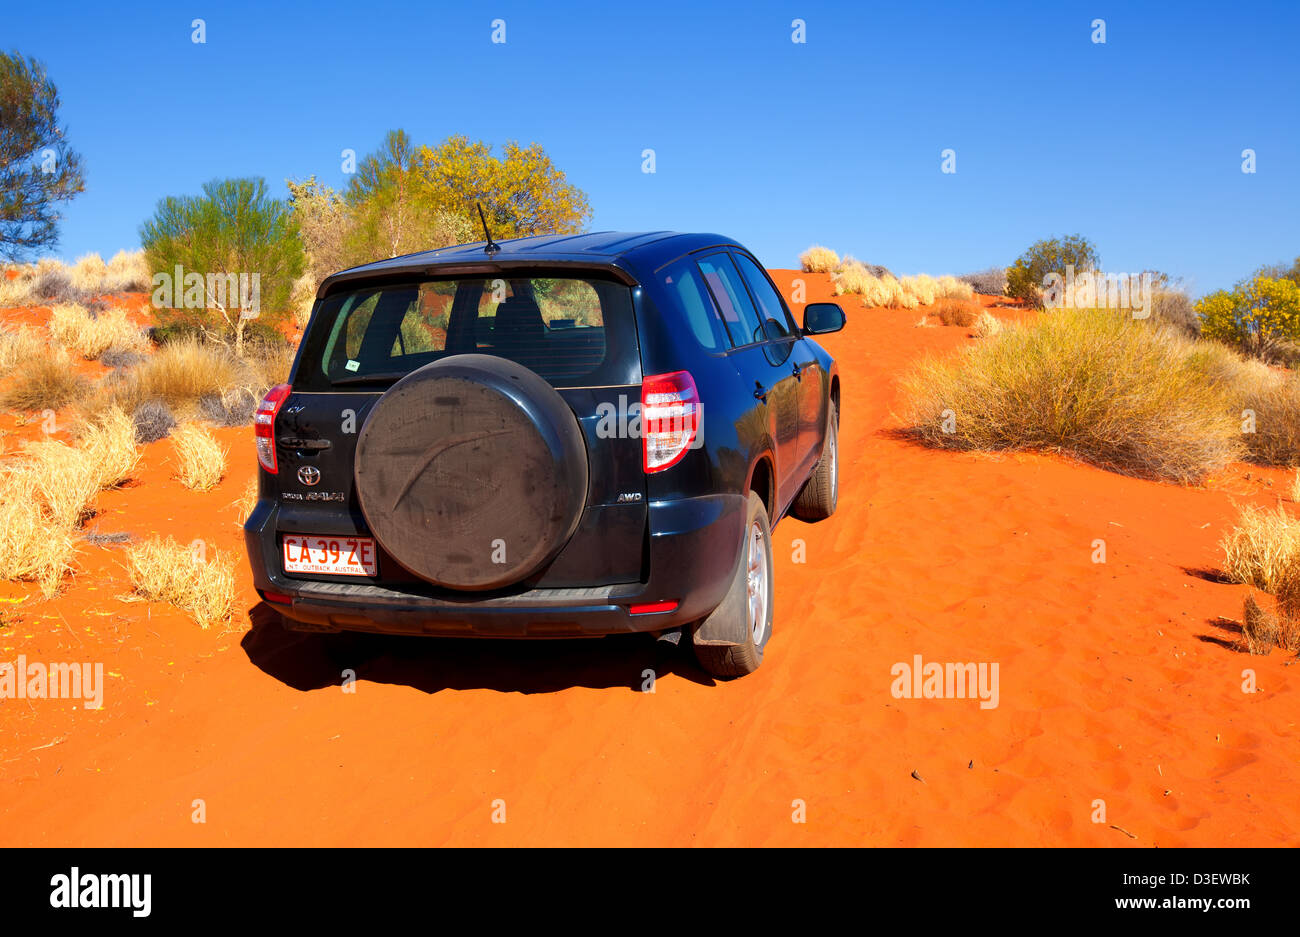 A 4WD vehicle on a sandy desert track in Central Australia Stock Photo